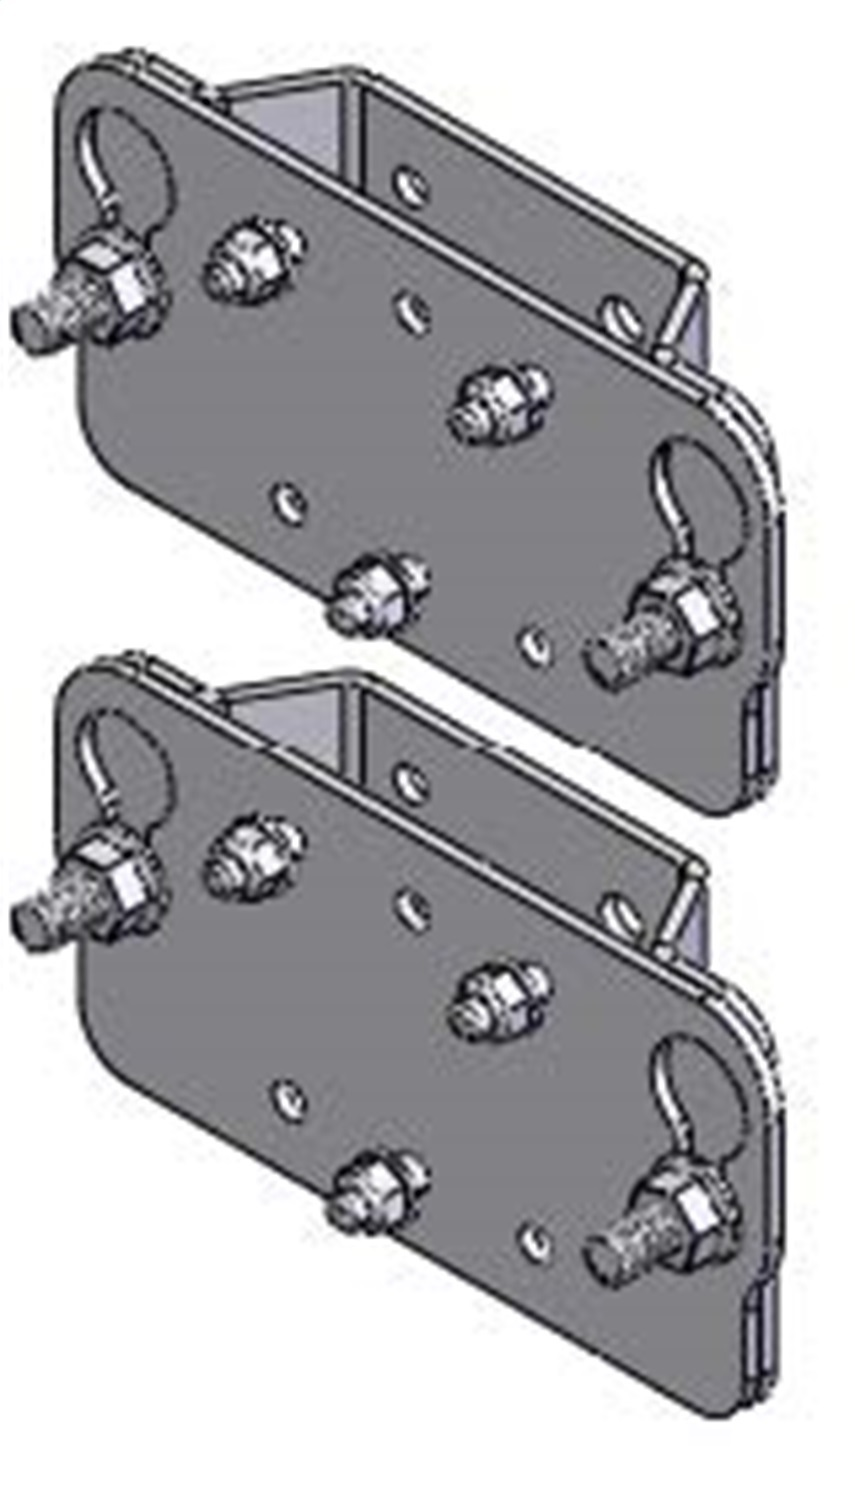 ARB, USA 813409 Awning Quick Release Bracket Kit